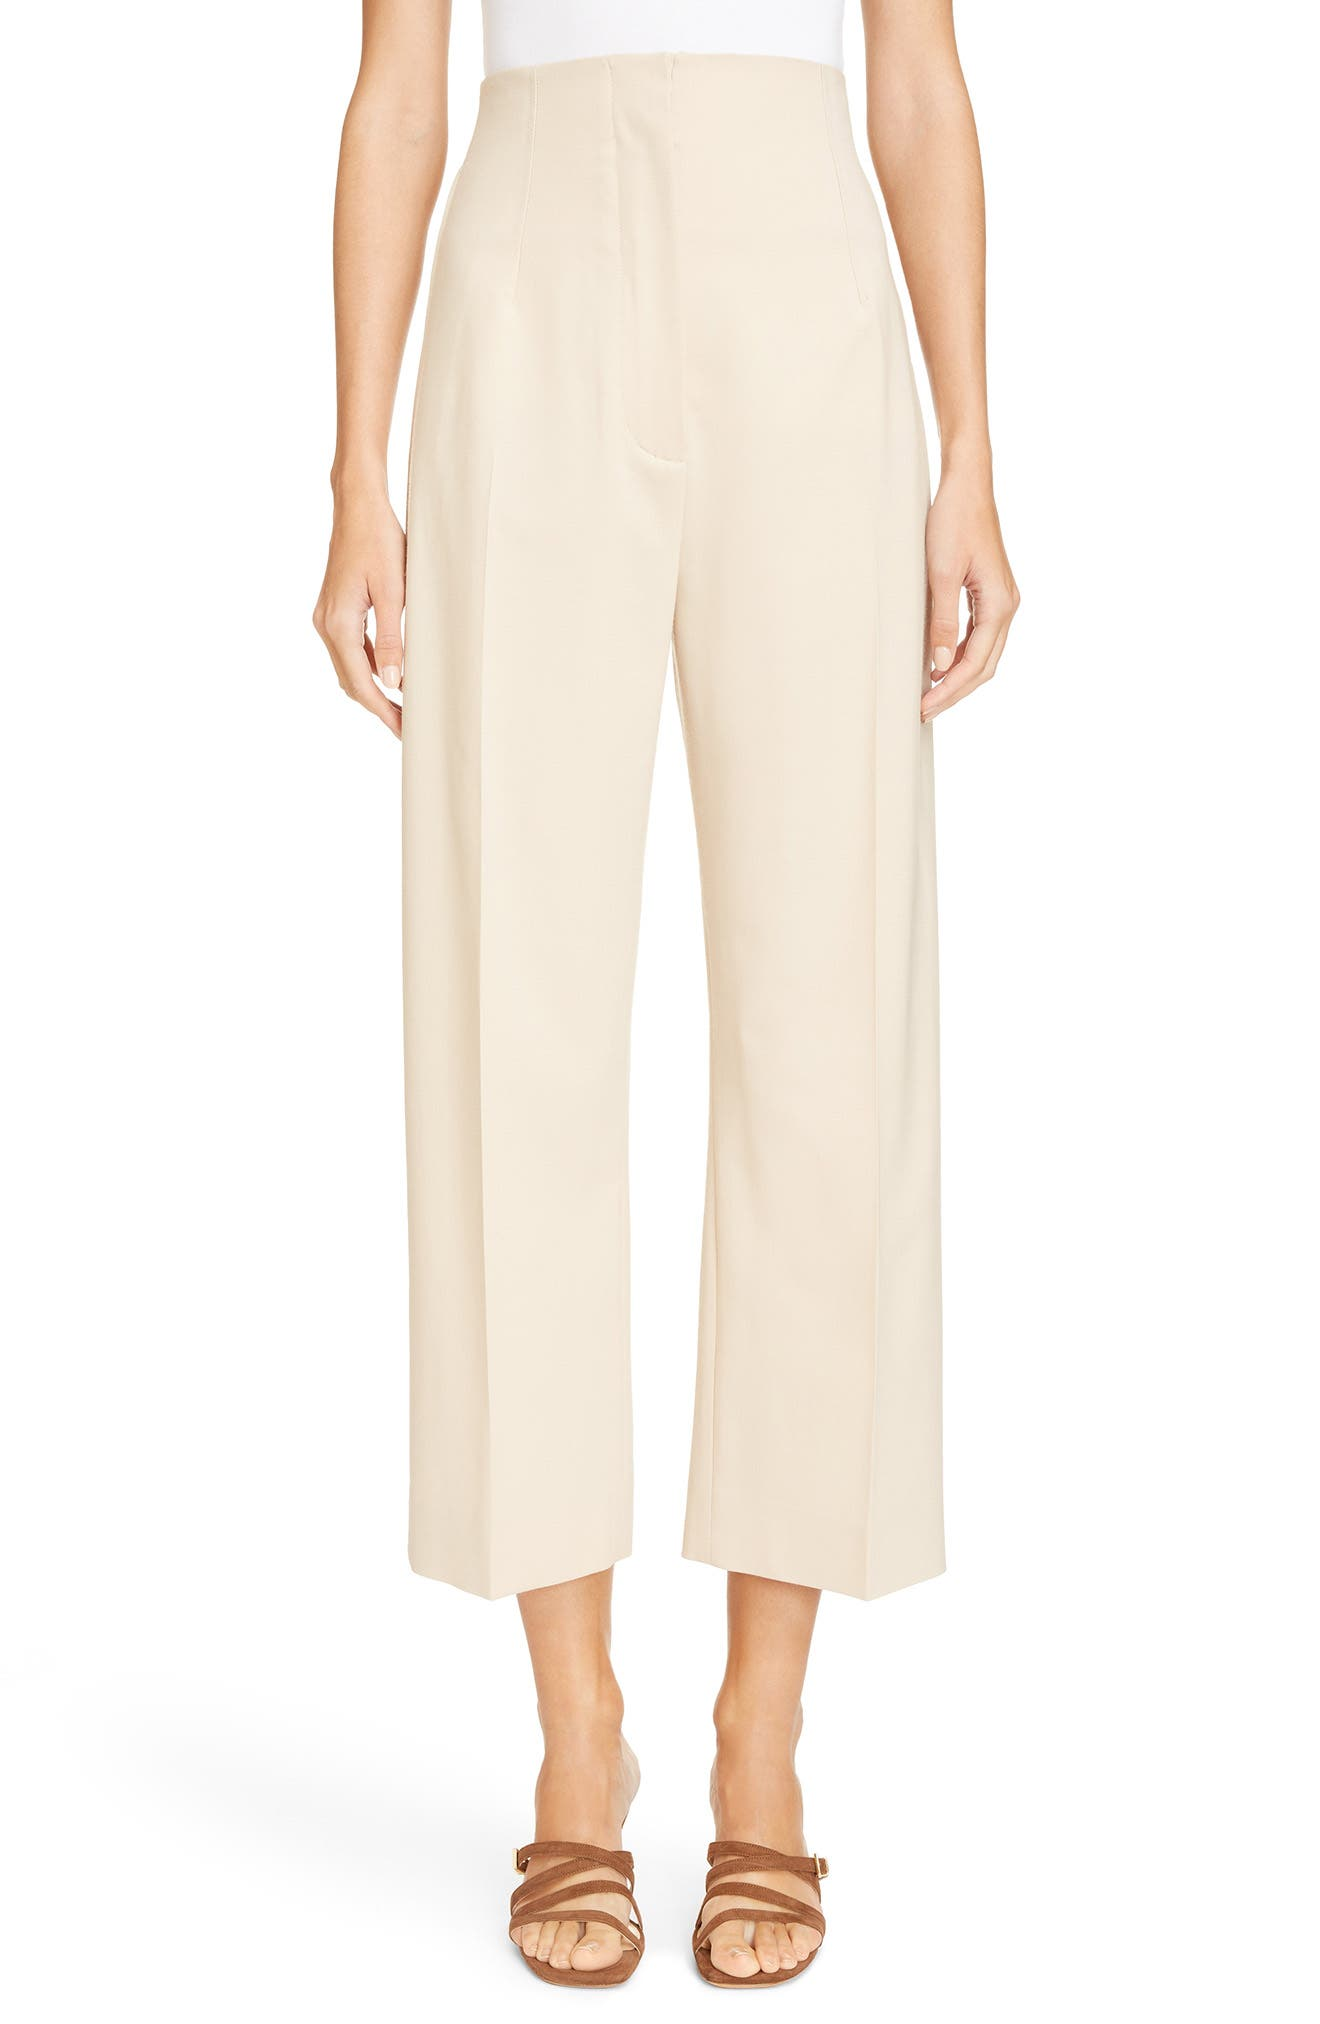 Le Pantalon Droit High Waist Crop Pants,                         Main,                         color, Beige